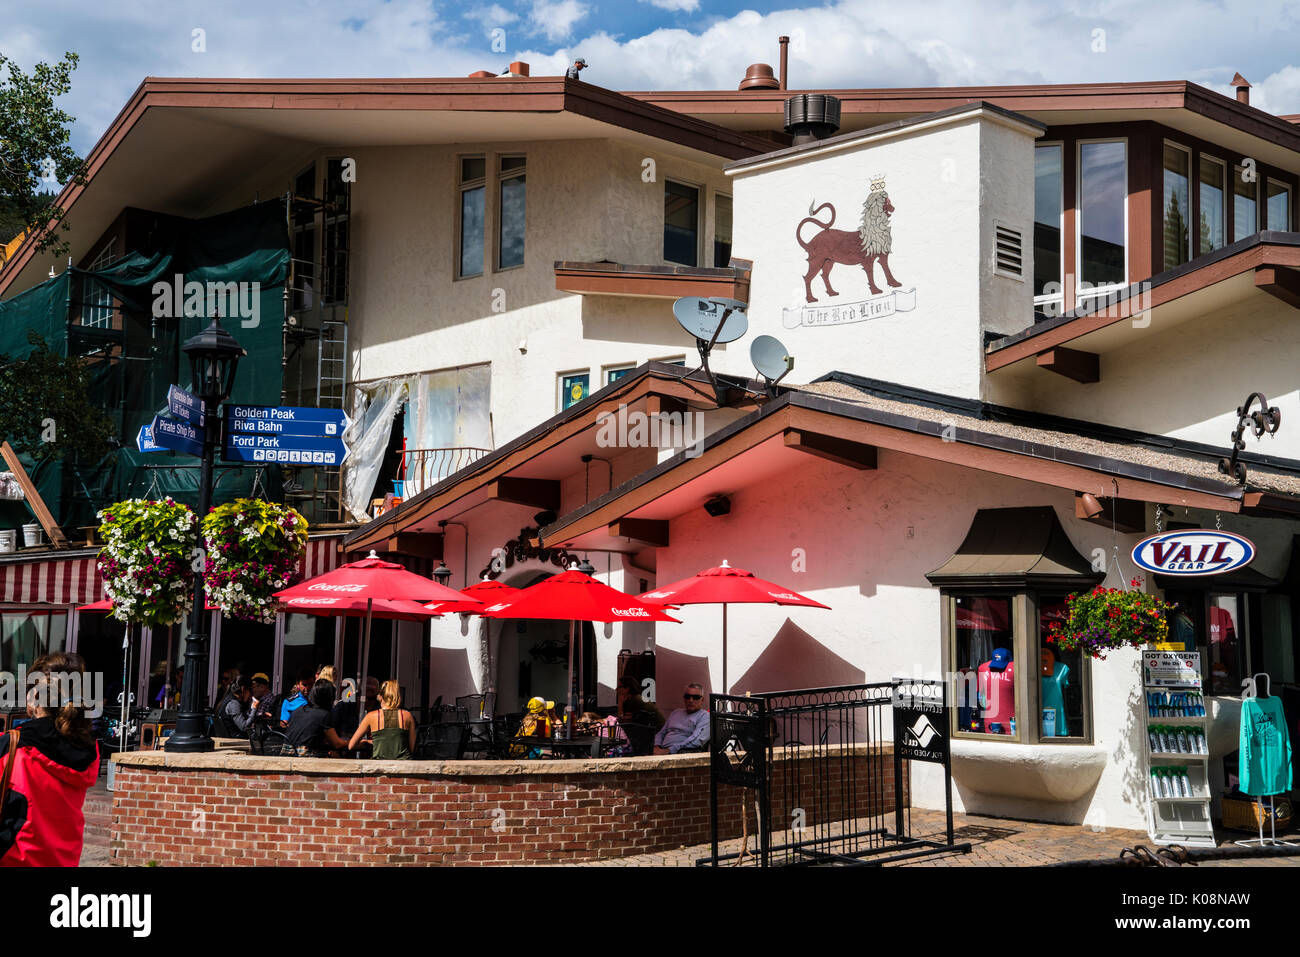 Red Lion Restaurant in Vail Ski Resort, Vail, CO, United States Stock Photo